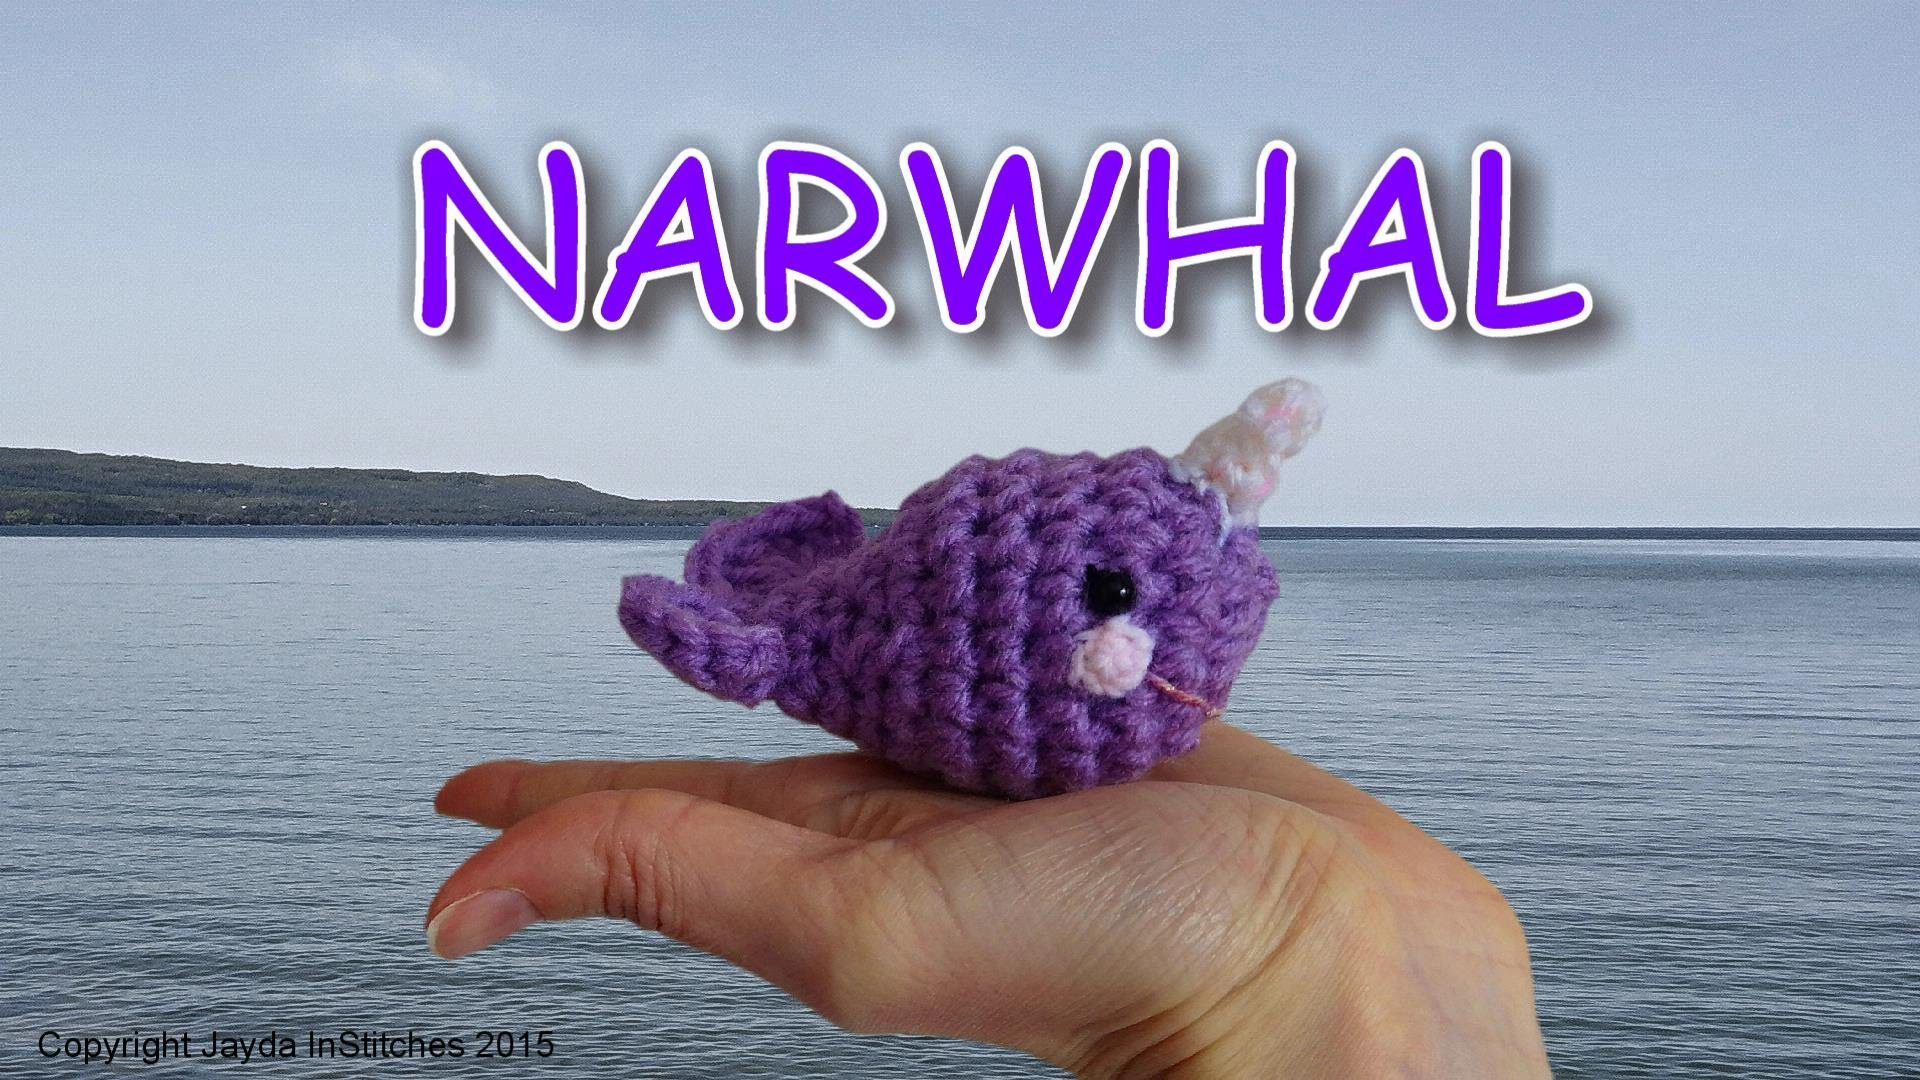 Crochet Amigurumi Narwhal Tutorial - Great Beginner Project